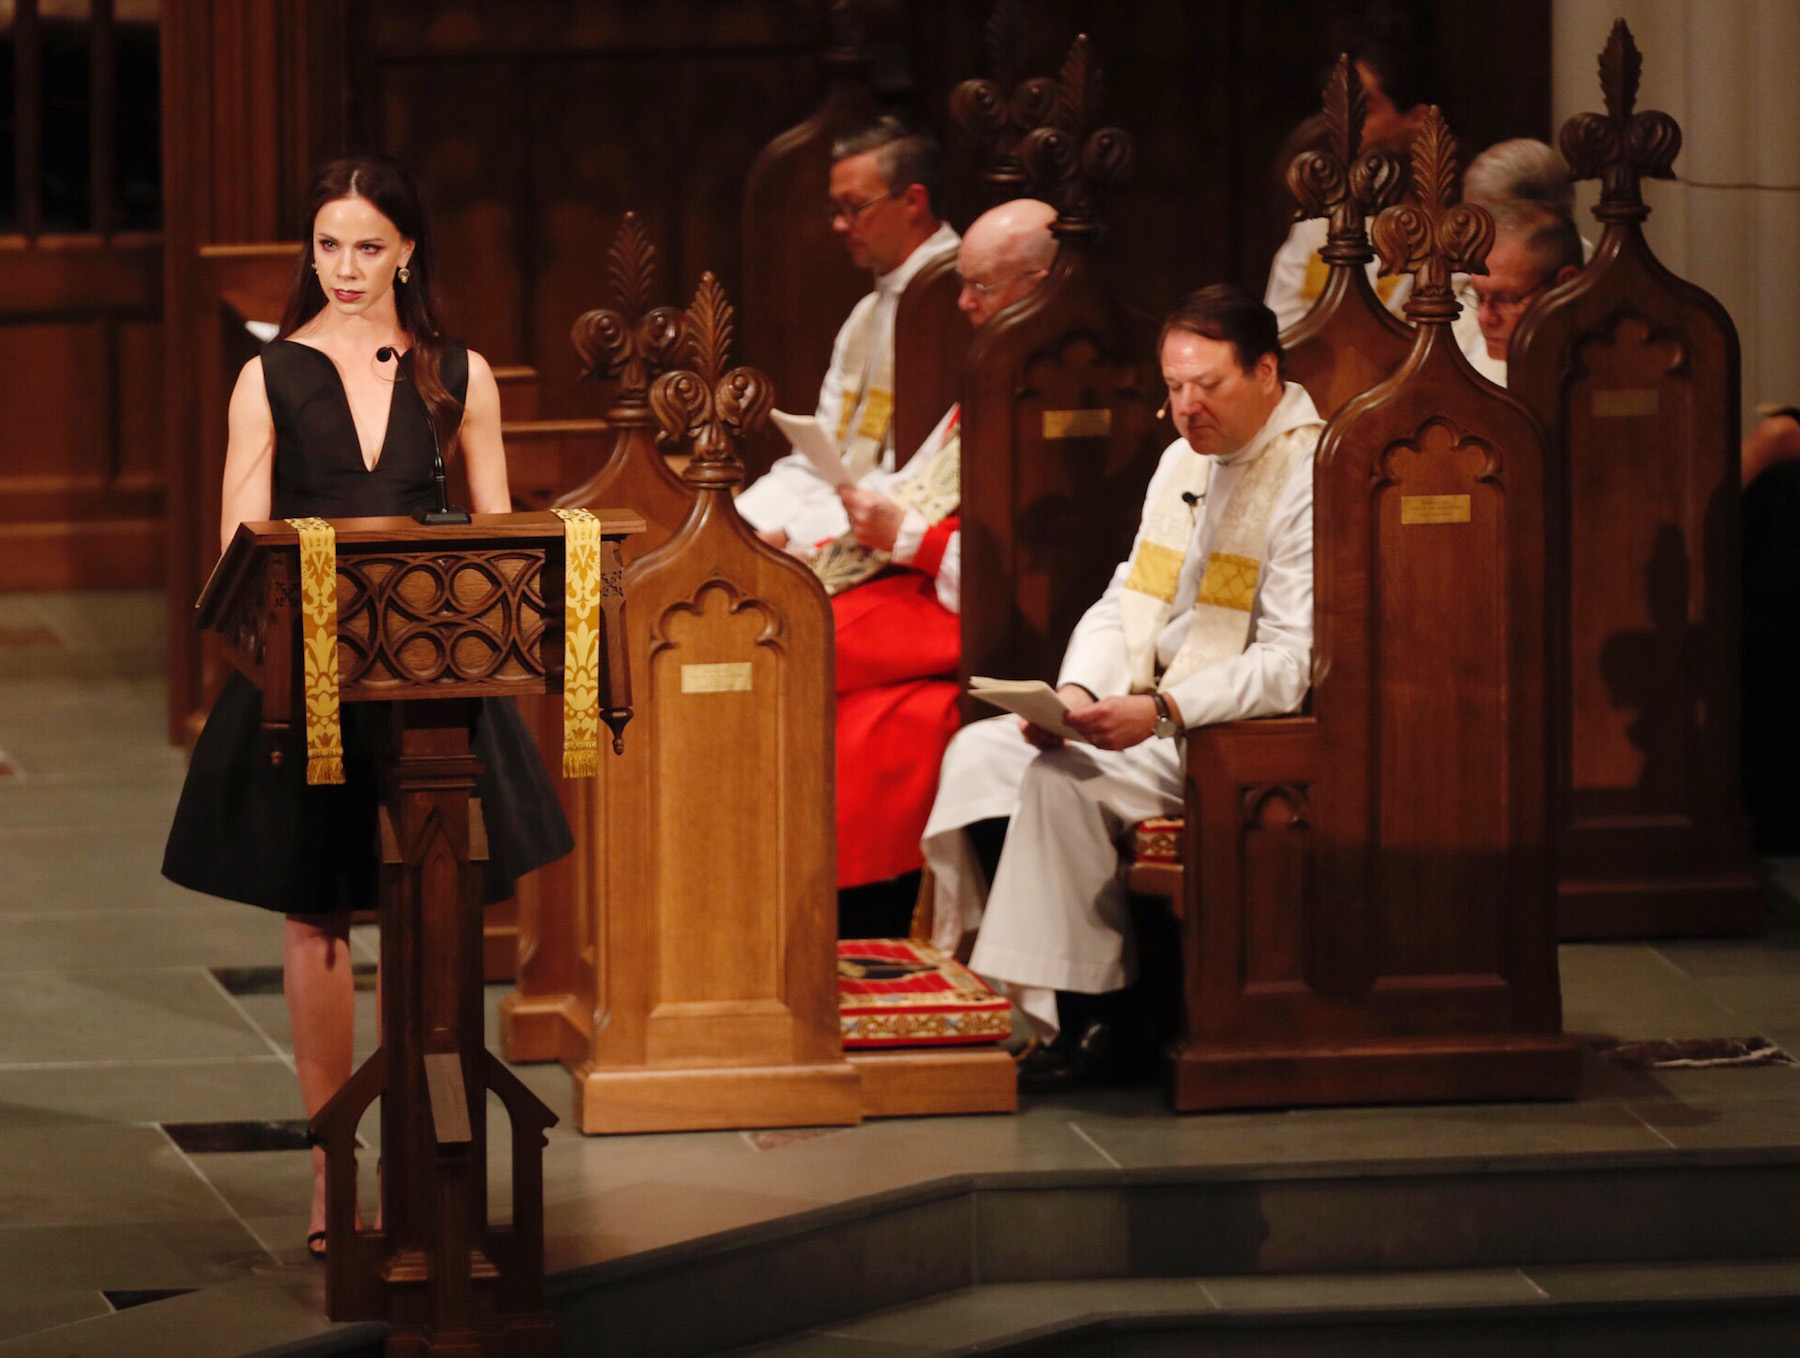 <div class='meta'><div class='origin-logo' data-origin='none'></div><span class='caption-text' data-credit='David J. Phillip-Pool/Getty Images'>Barbara Pierce Bush speaks during the funeral for her grandmother and former first lady Barbara Bush at St. Martin's Episcopal Church on April 21, 2018 in Houston, Texas.</span></div>